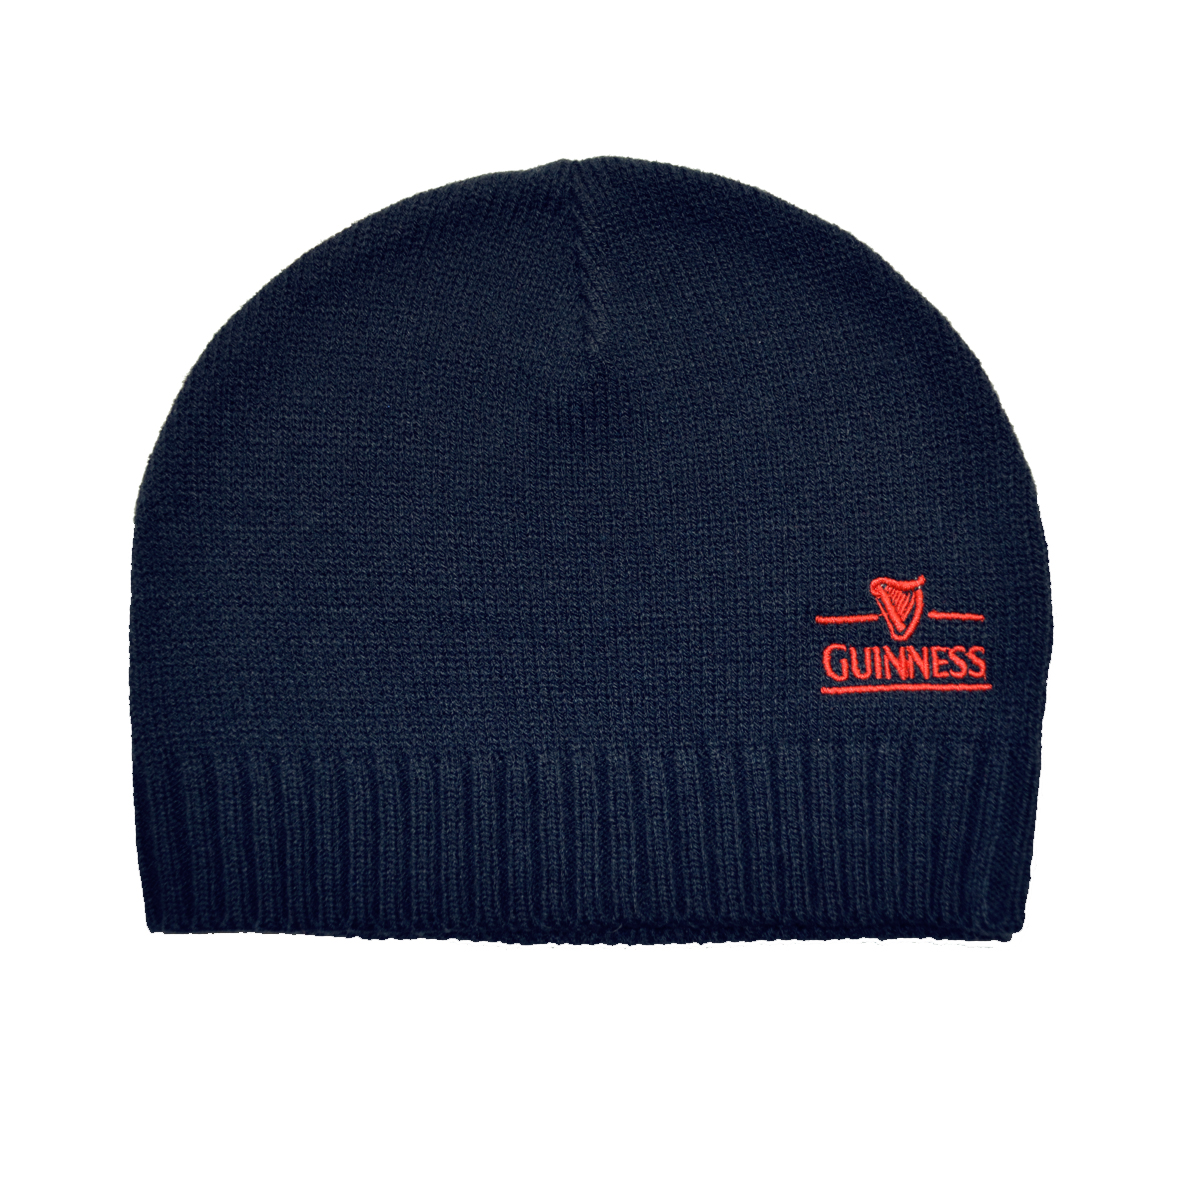 Guinness Harp Knit Hat - One Size NAVY